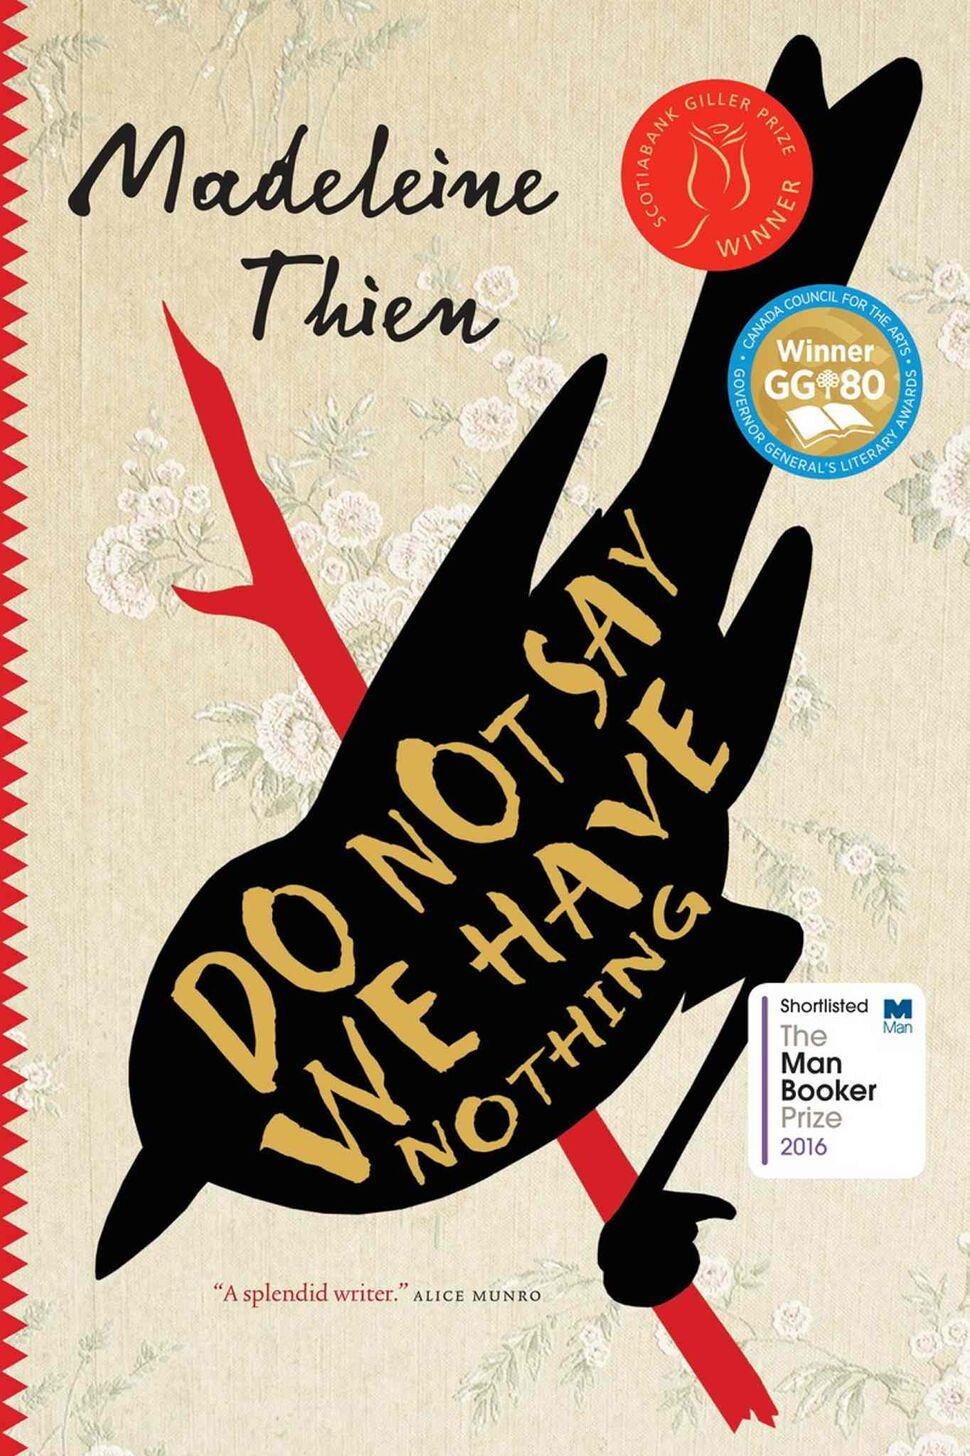 <h3>Do Not Say We Have Nothing</h3> <br/> By Madeleine Thien <br/> <strong>Thien won this year's Giller Prize for her sensitive exploration of how the Chinese Cultural Revolution still reverberates in the lives of those who experienced it, as well as their descendants. Skewed thinking and power struggles within the Communist Party distorted the victories for which so many sacrificed, but Thien writes with empathy, even for those who cannot forgive themselves.</strong> <br/> — Harriet Zaidman